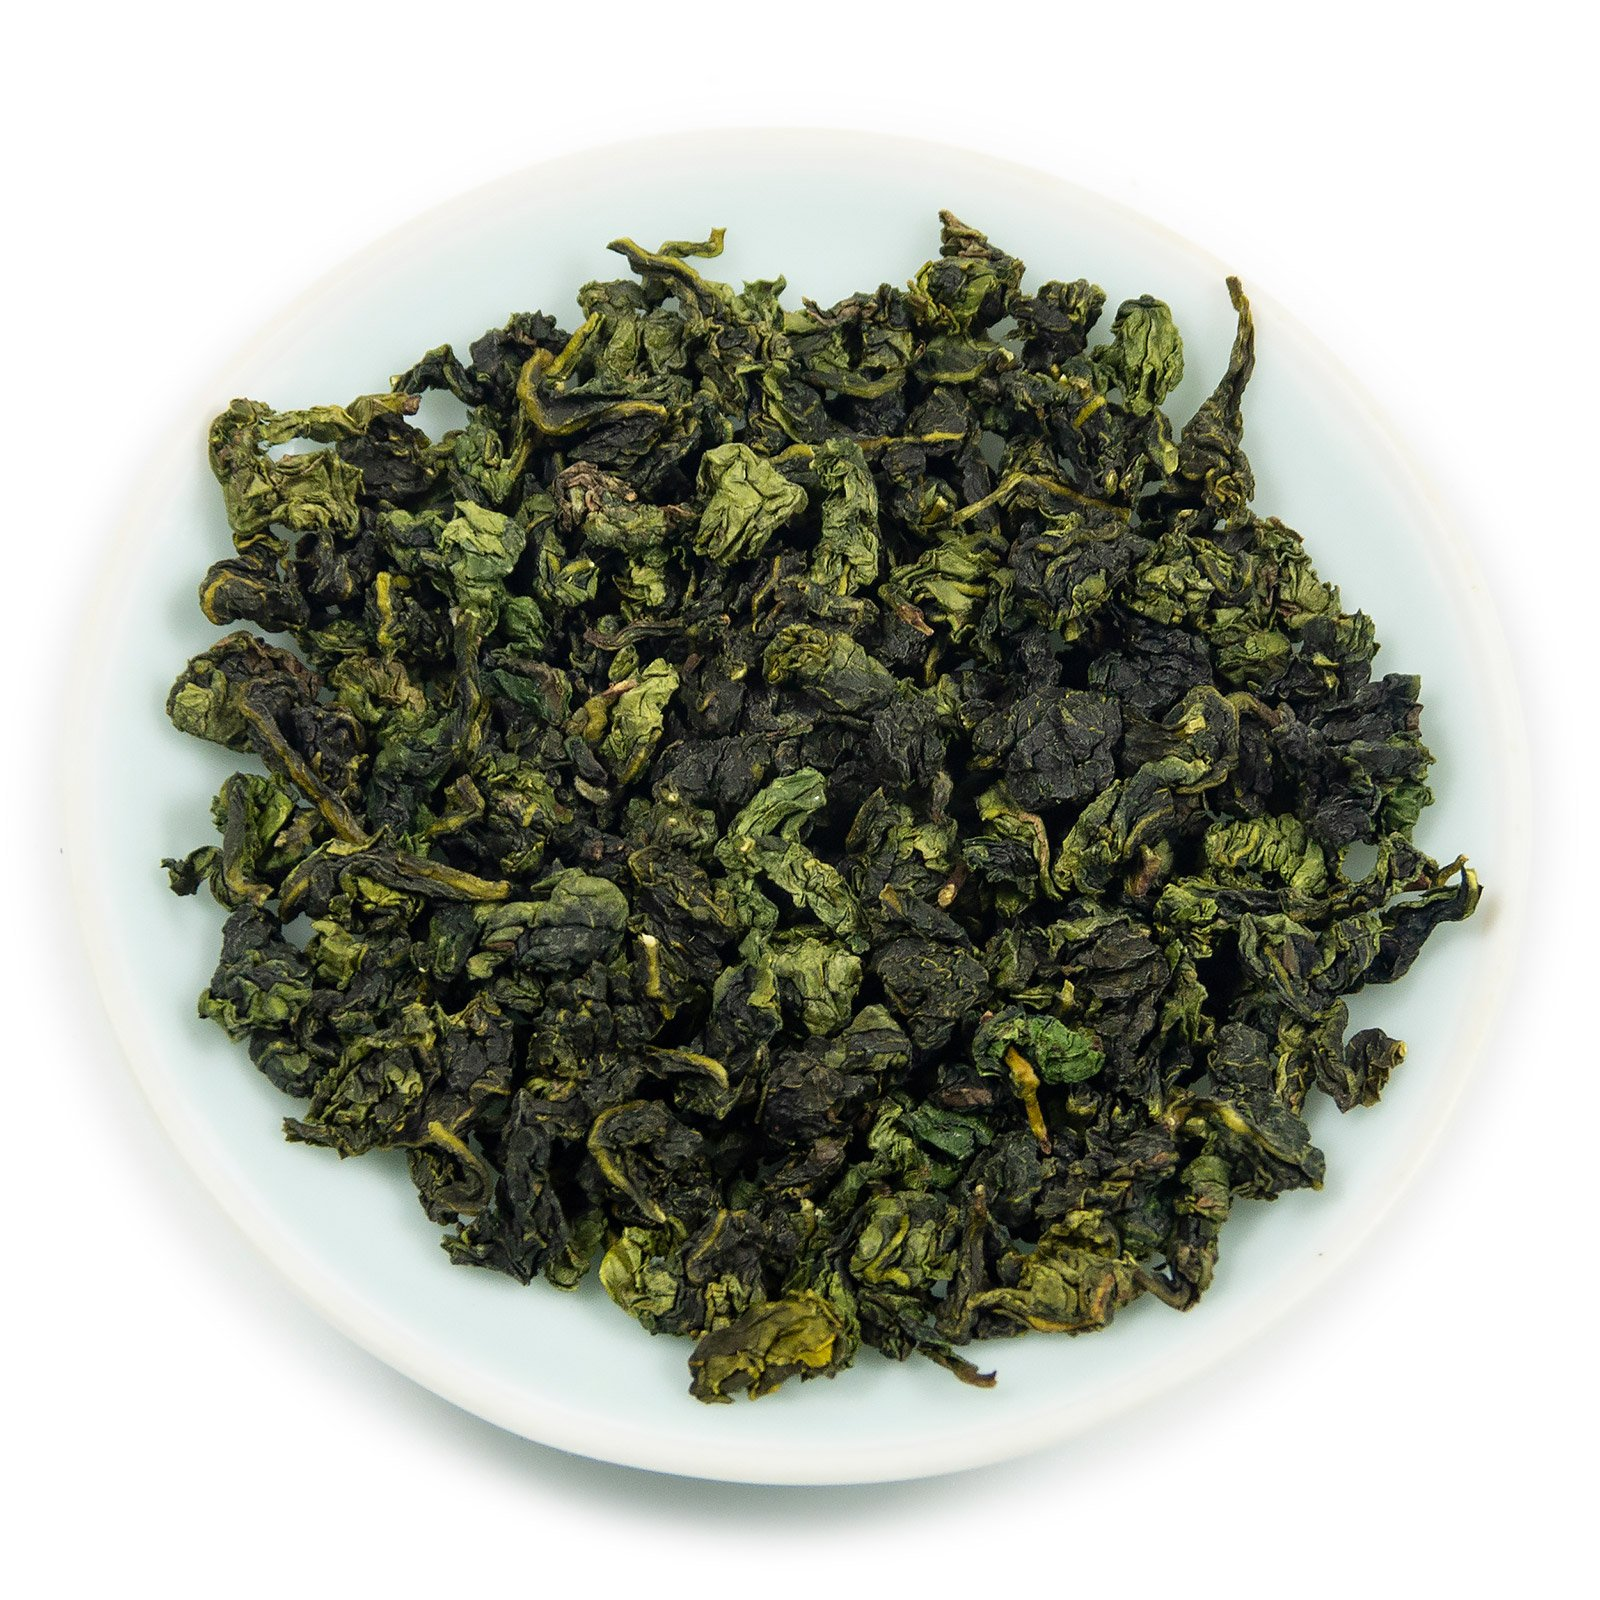 Oriarm 1kg Tie Guan Yin Oolong Tea from Anxi Fujian, Chinese Tieguanyin Oolong Green Tea Loose Leaf, Natural Whole Leaves Rich Antioxidants Brew Hot Tea or Iced Tea by Oriarm (Image #1)